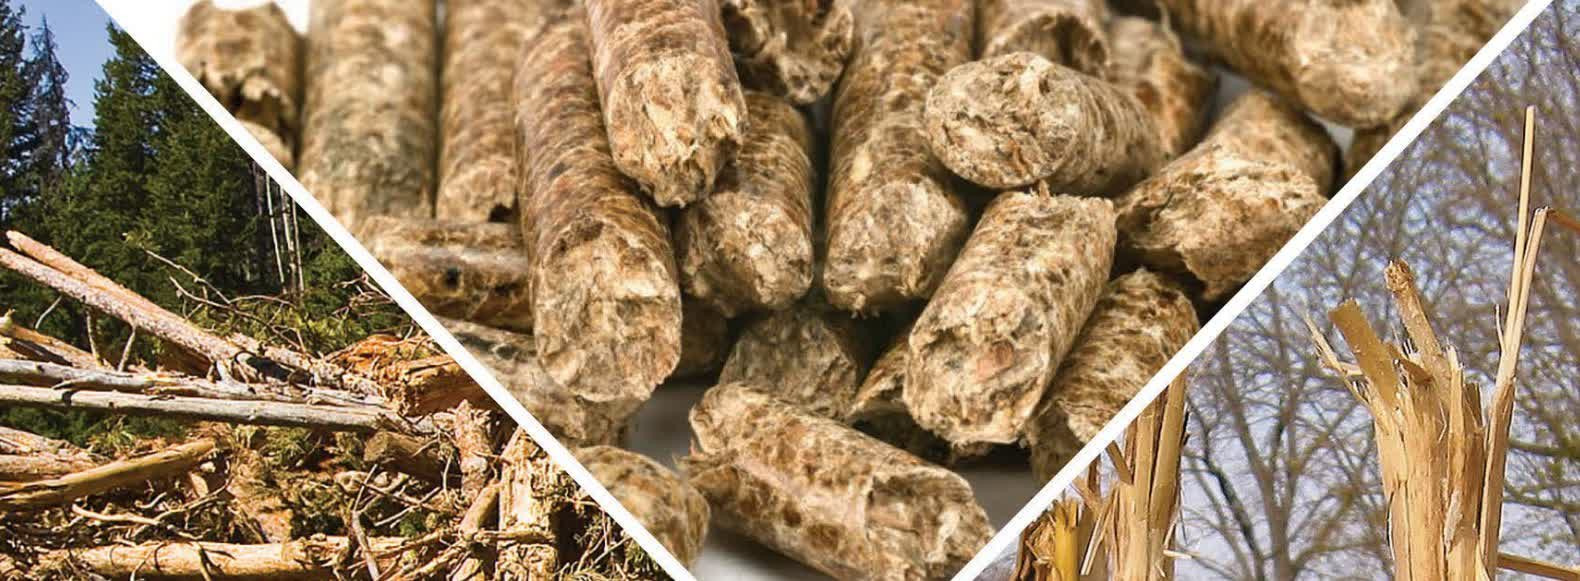 Enter the global wood pellet market